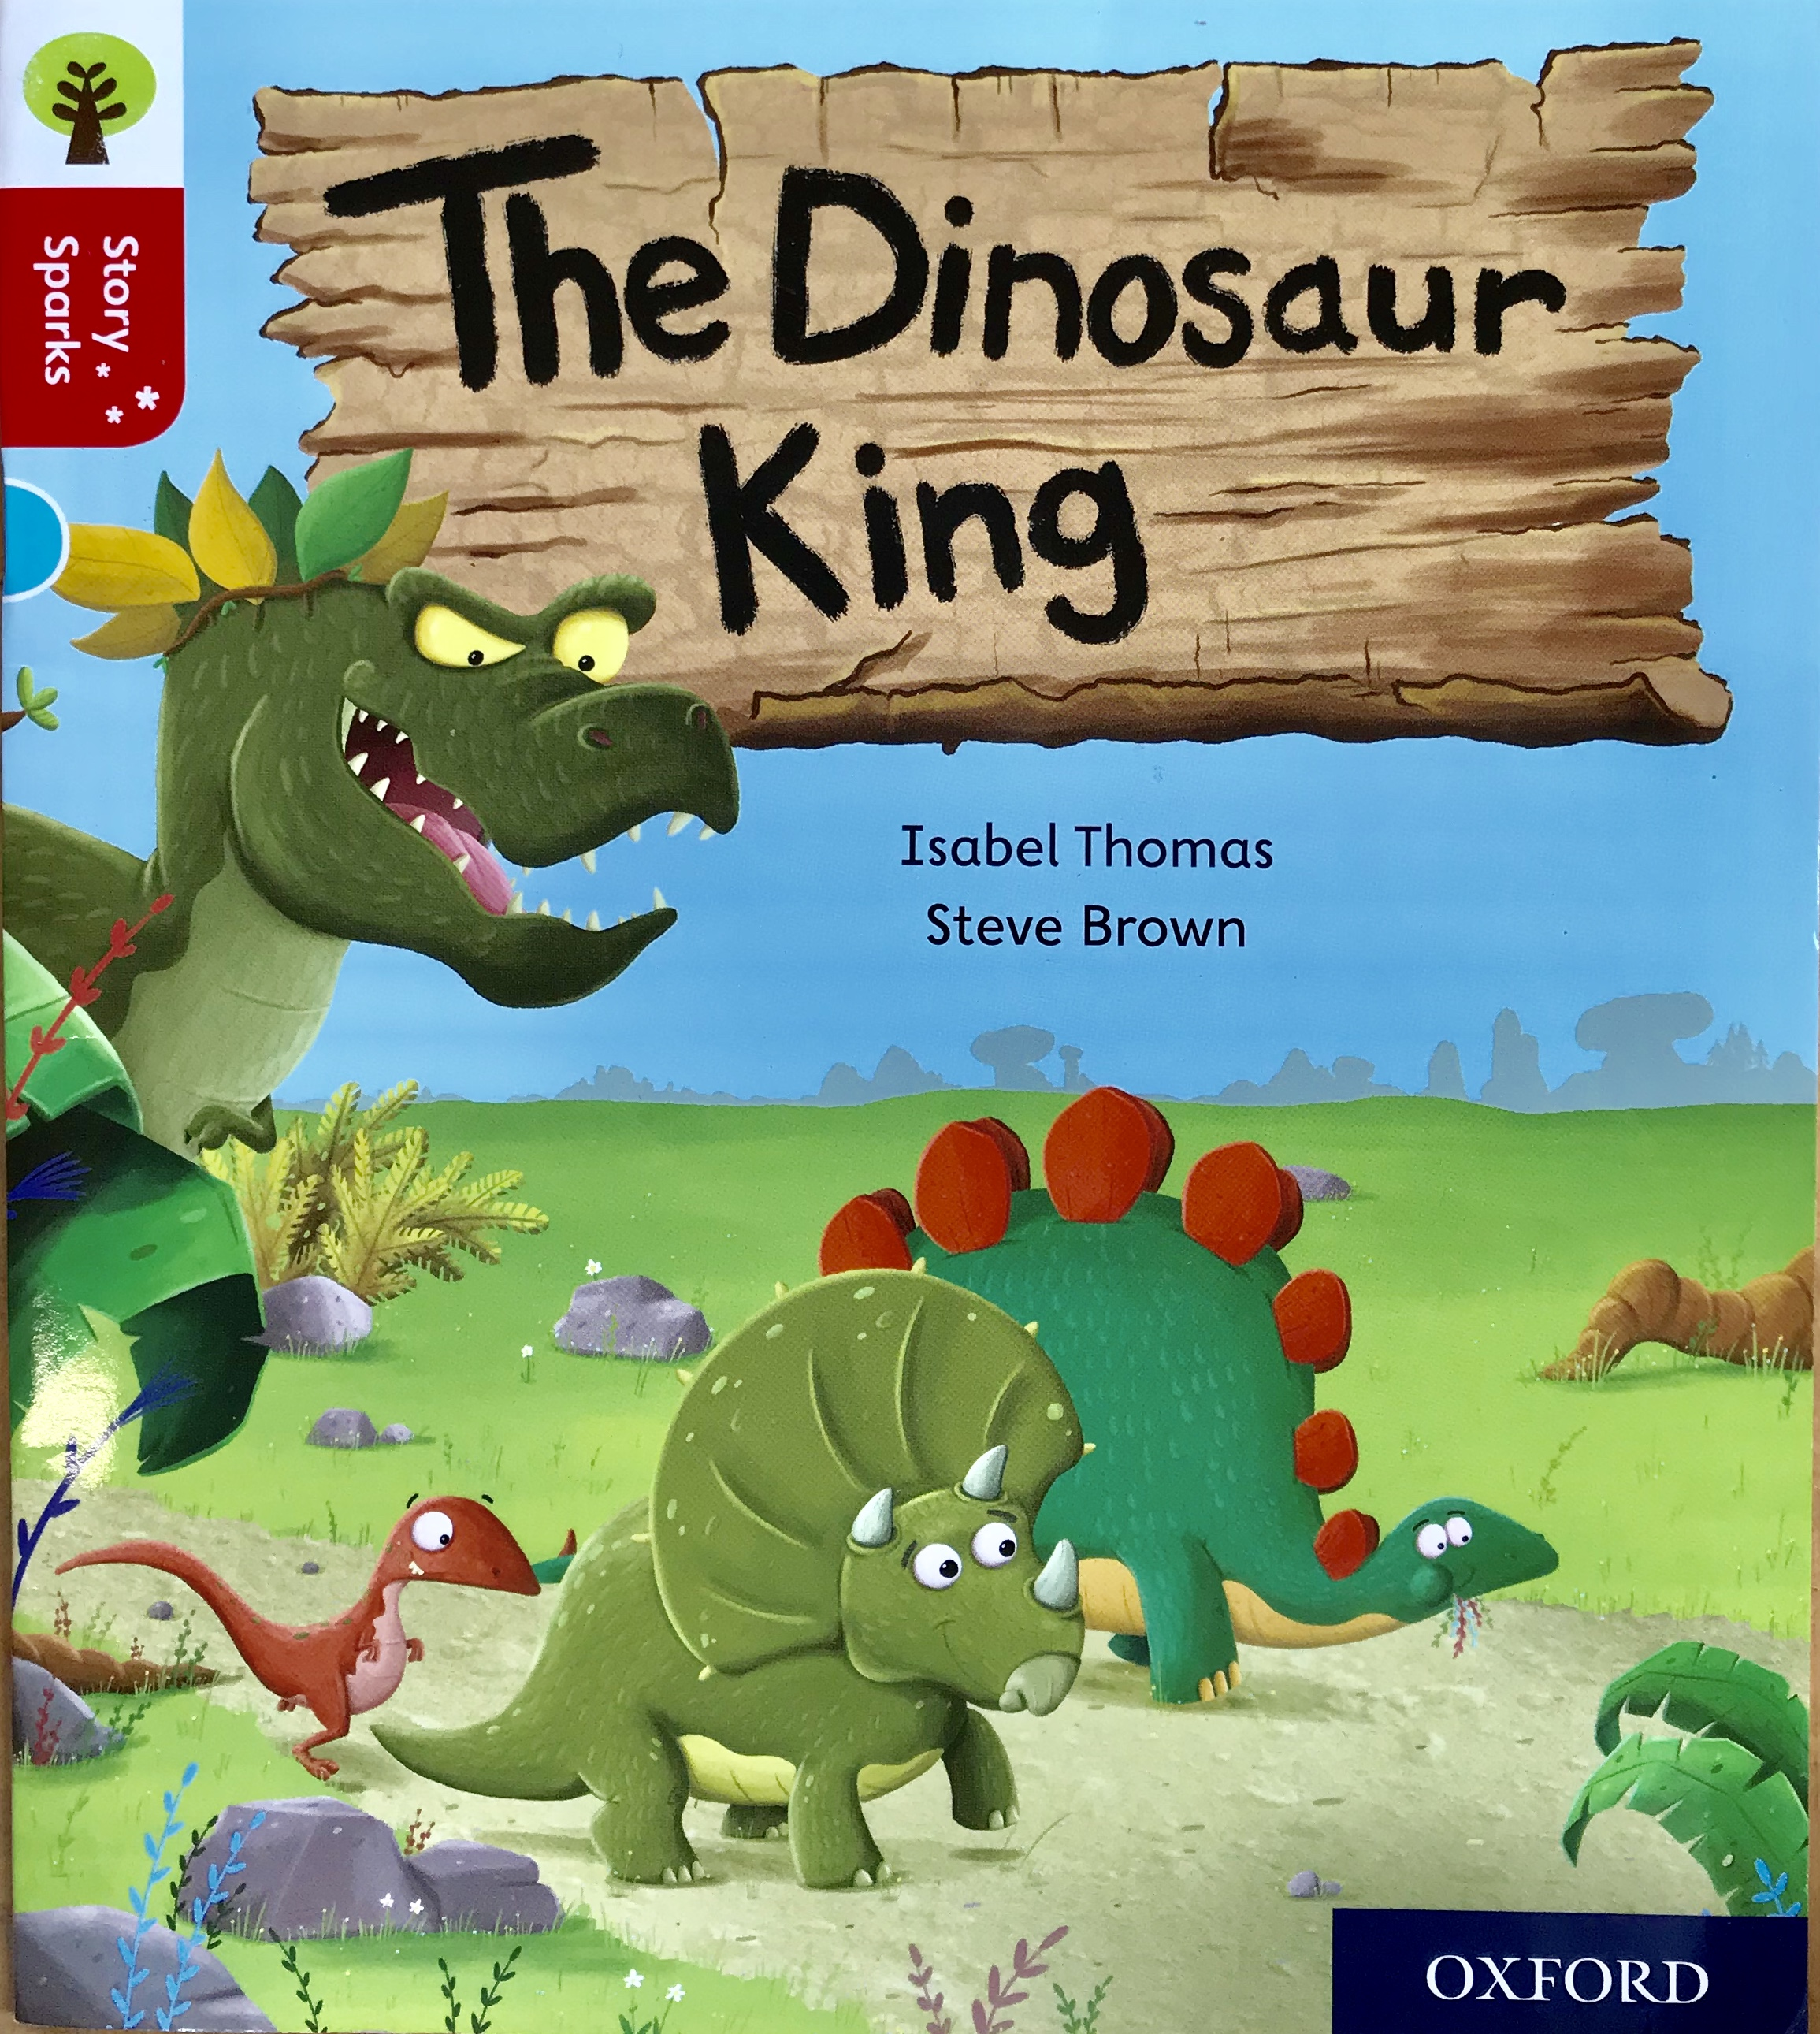 The Dinosaur King